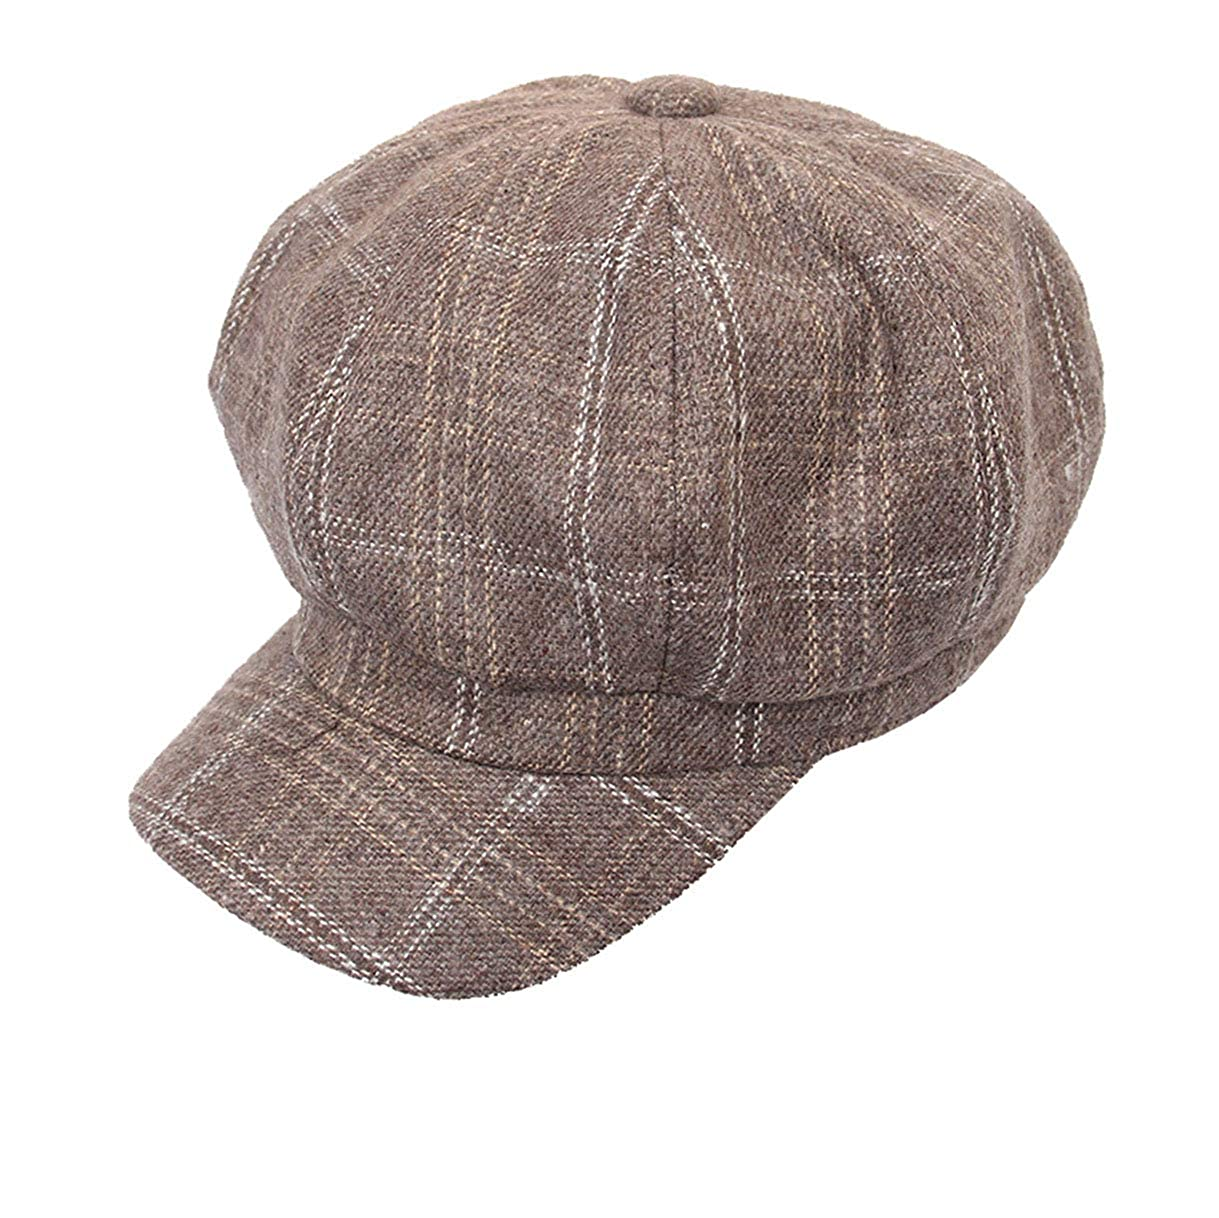 4835d9ed927023 ... Women Tweed-Plaid Newsboy-Hats Cabbie - Classic-Cabbie Paperboy Painter  Newsboy Cap ...